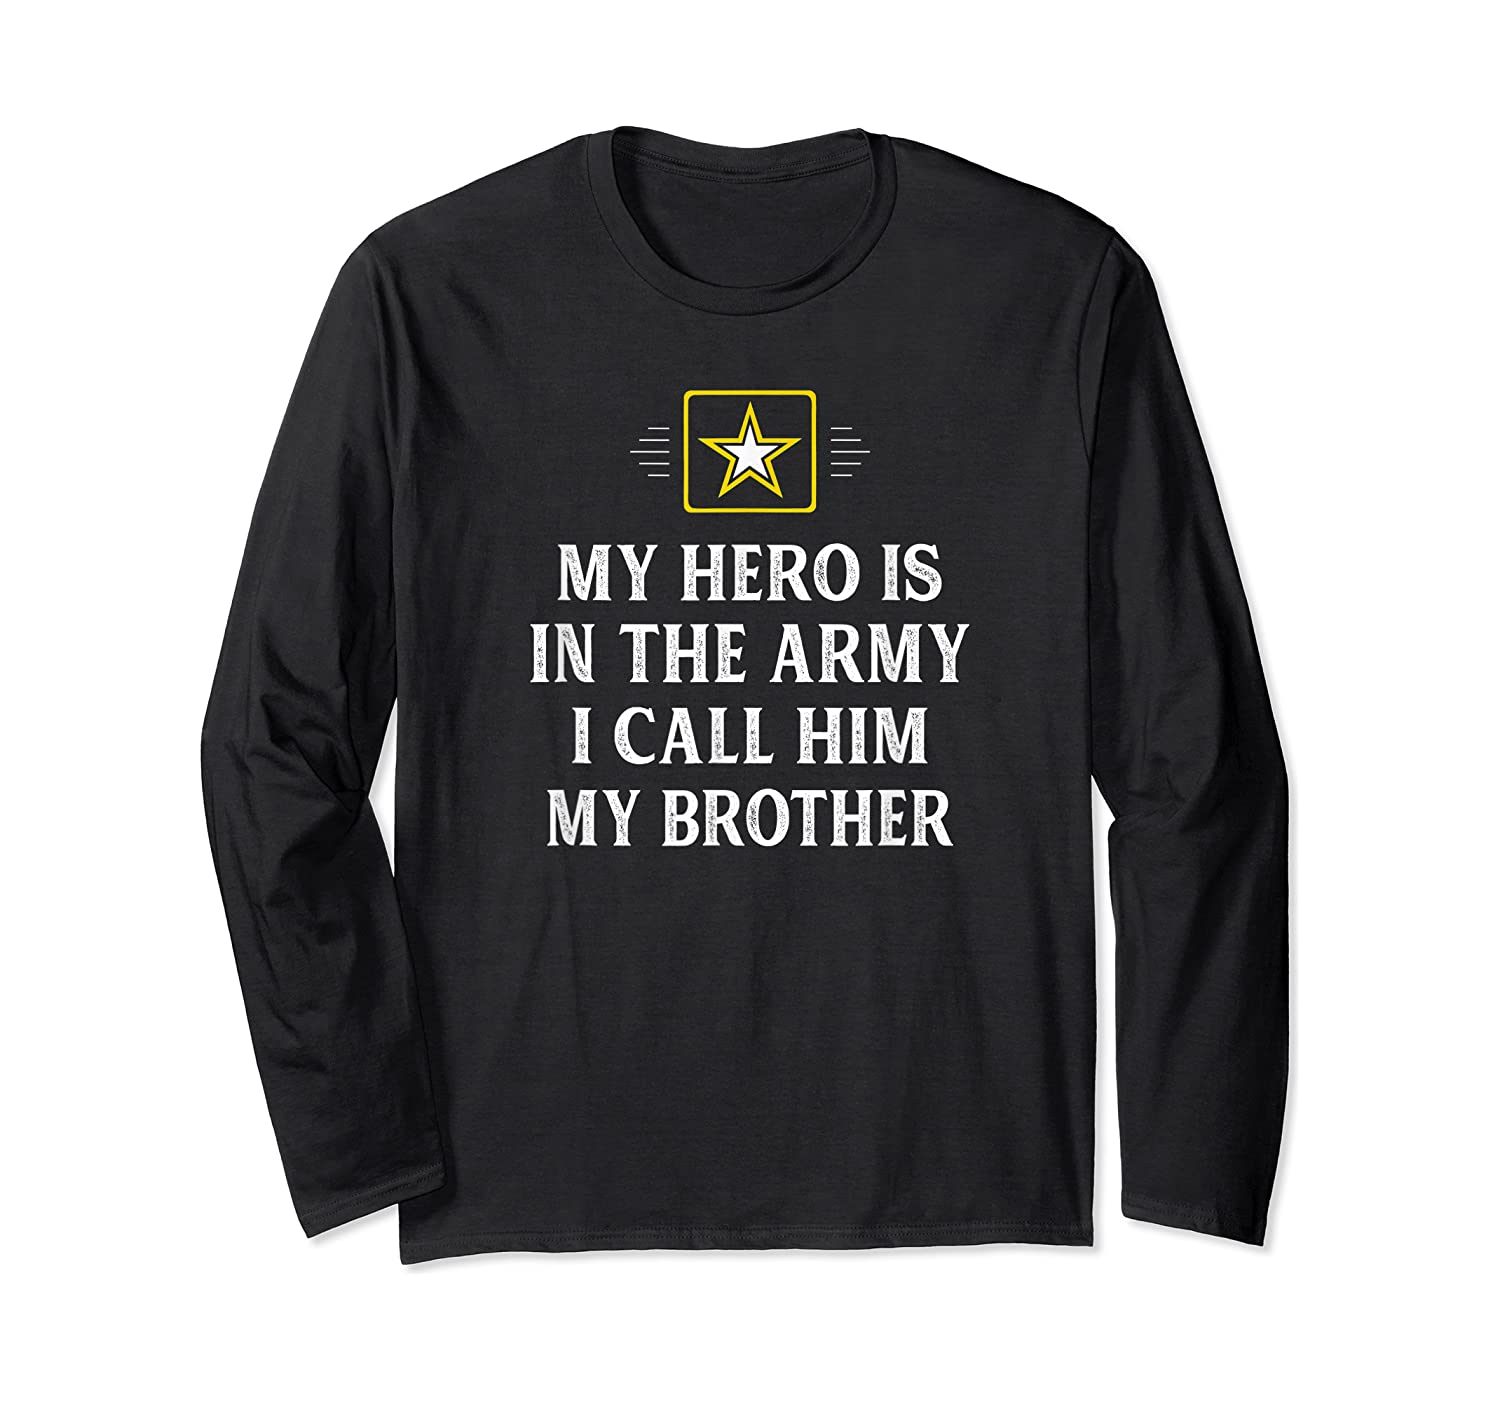 My Hero Is In The Army - I Call Him My Brother - Vintage - T-shirt Long Sleeve T-shirt